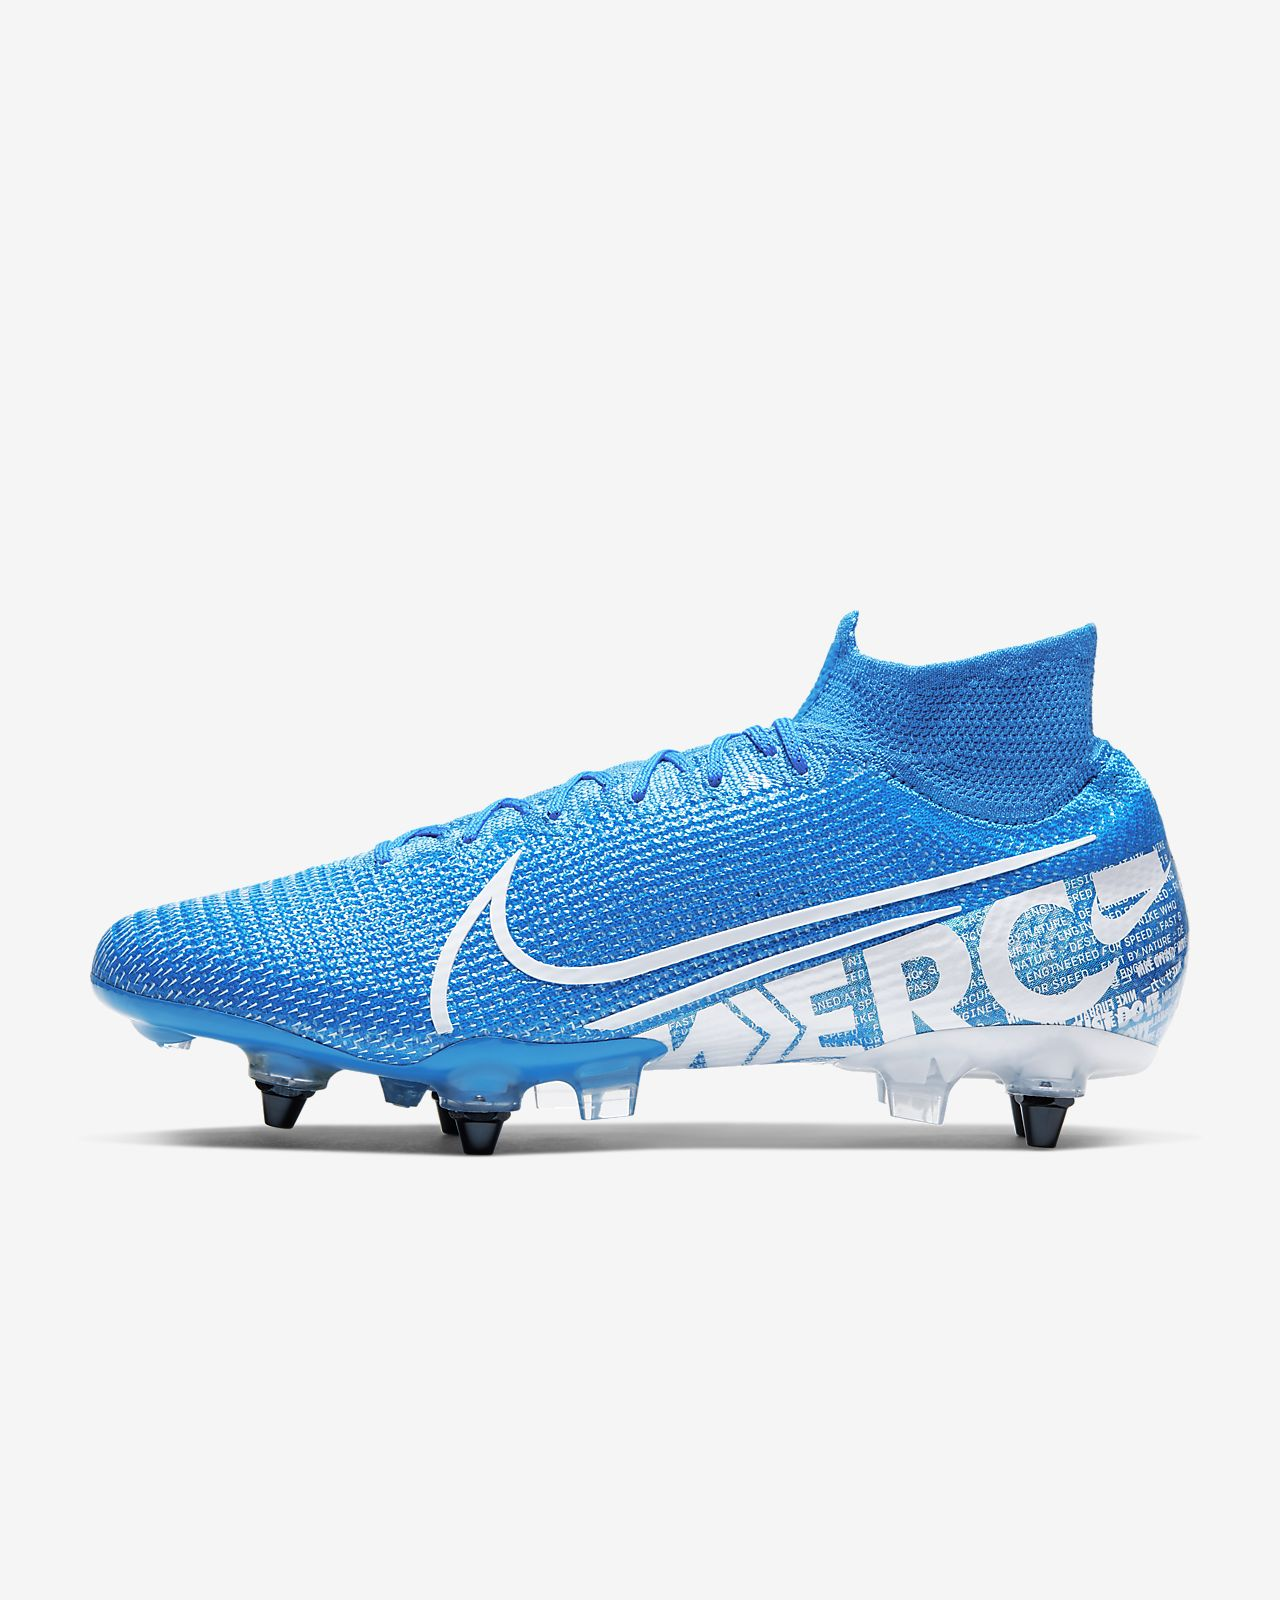 Nike Mercurial Superfly V ACC SG Pro Football Boots